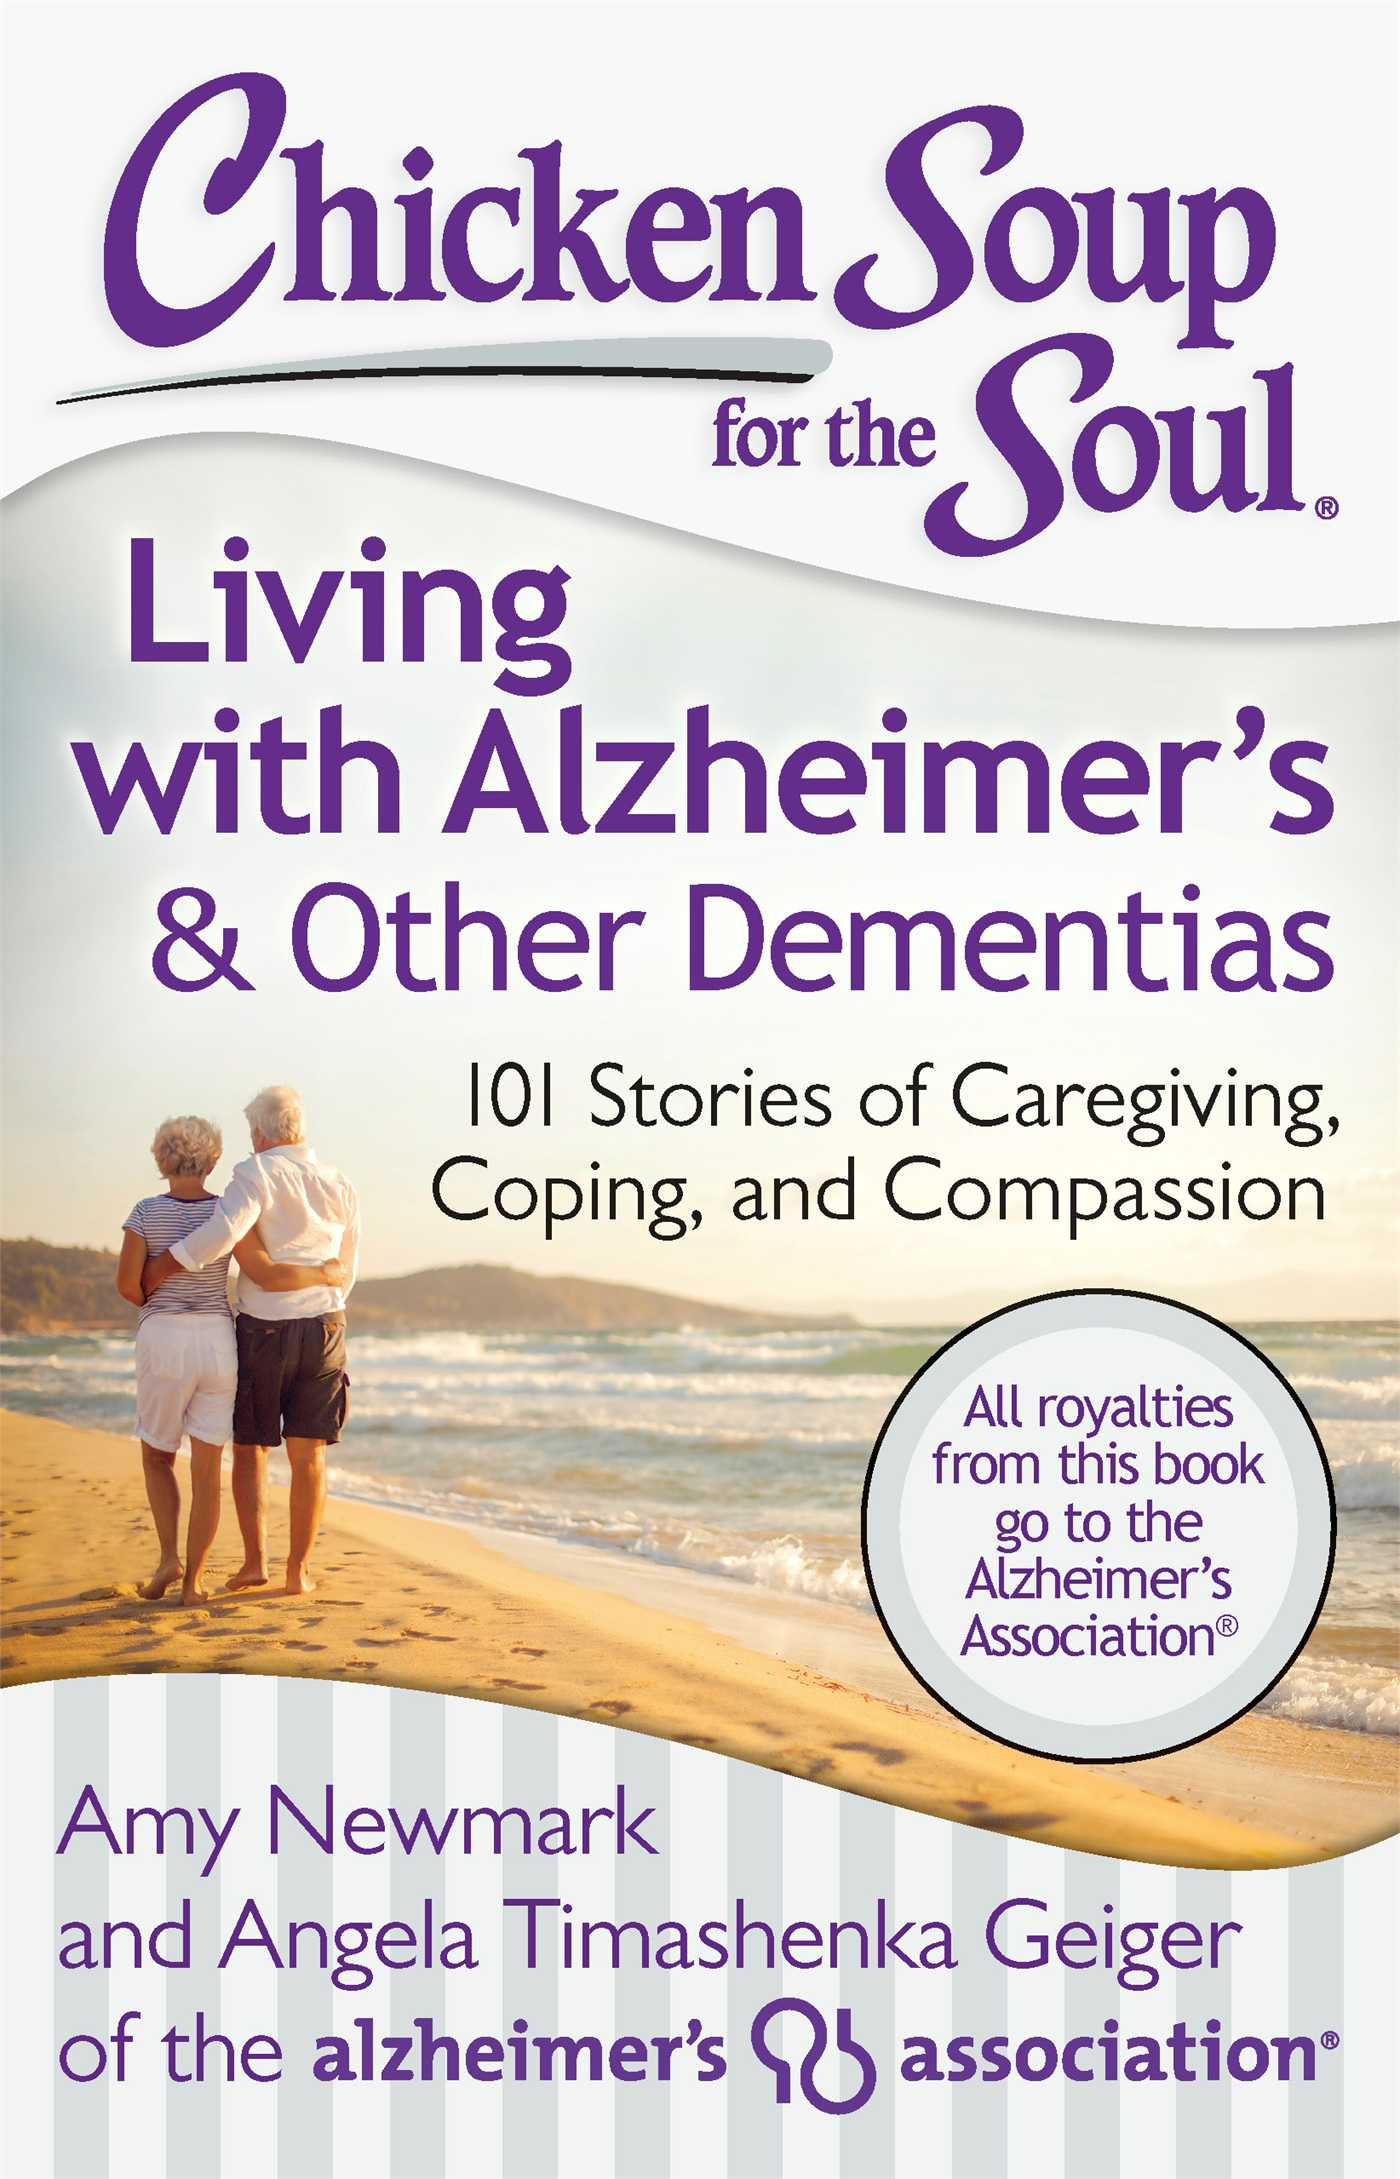 Chicken Soup For The Soul Books  Chicken Soup for the Soul Living with Alzheimer's & Other